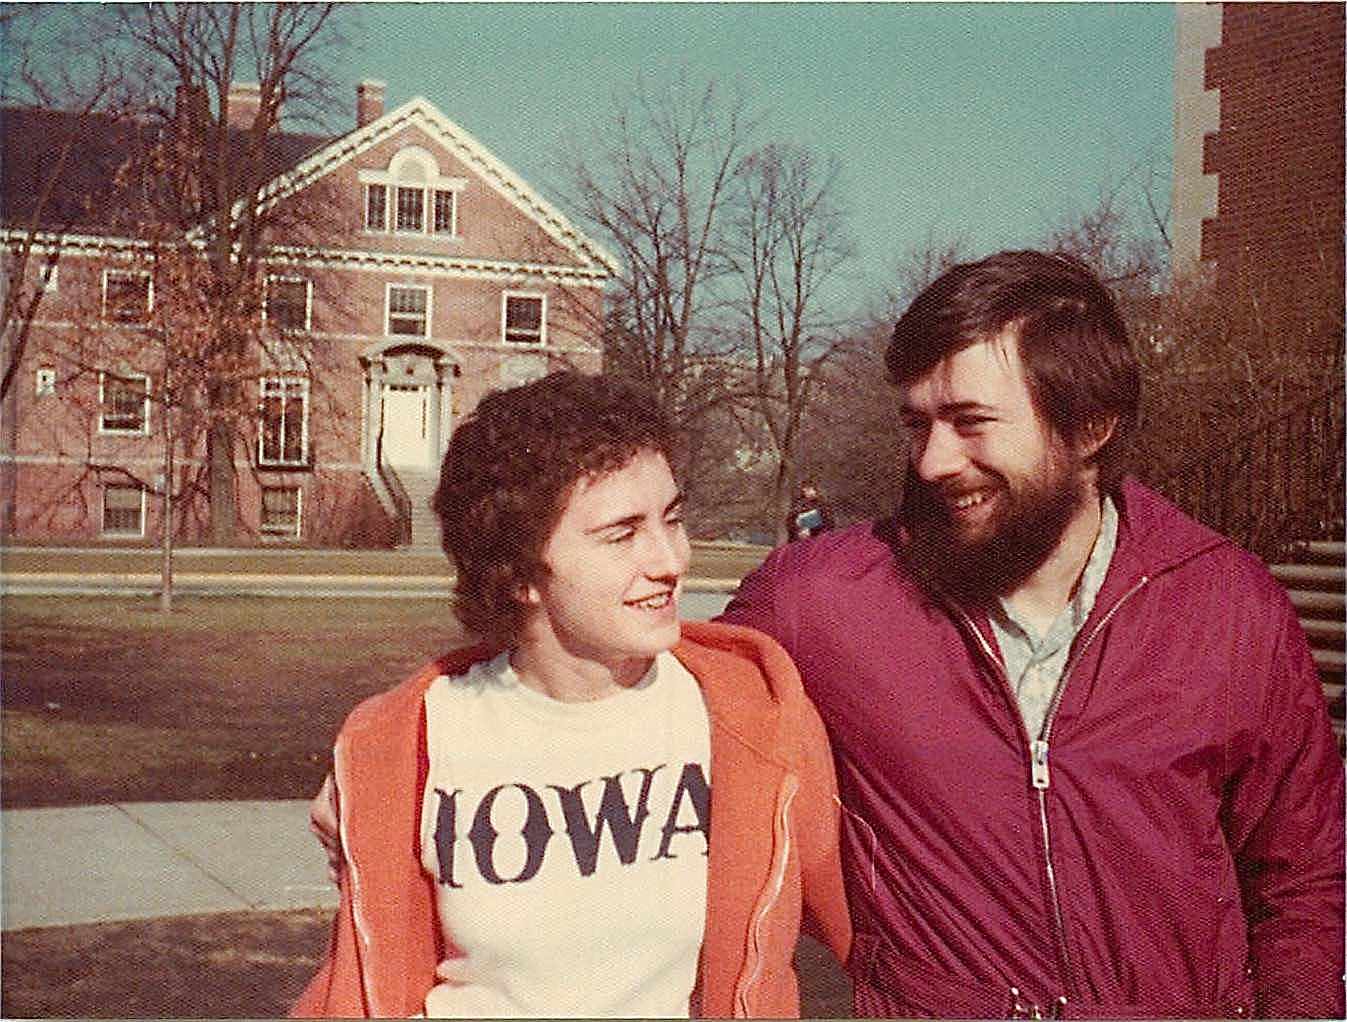 Ann & John Wagner, Iowa State, April 1975